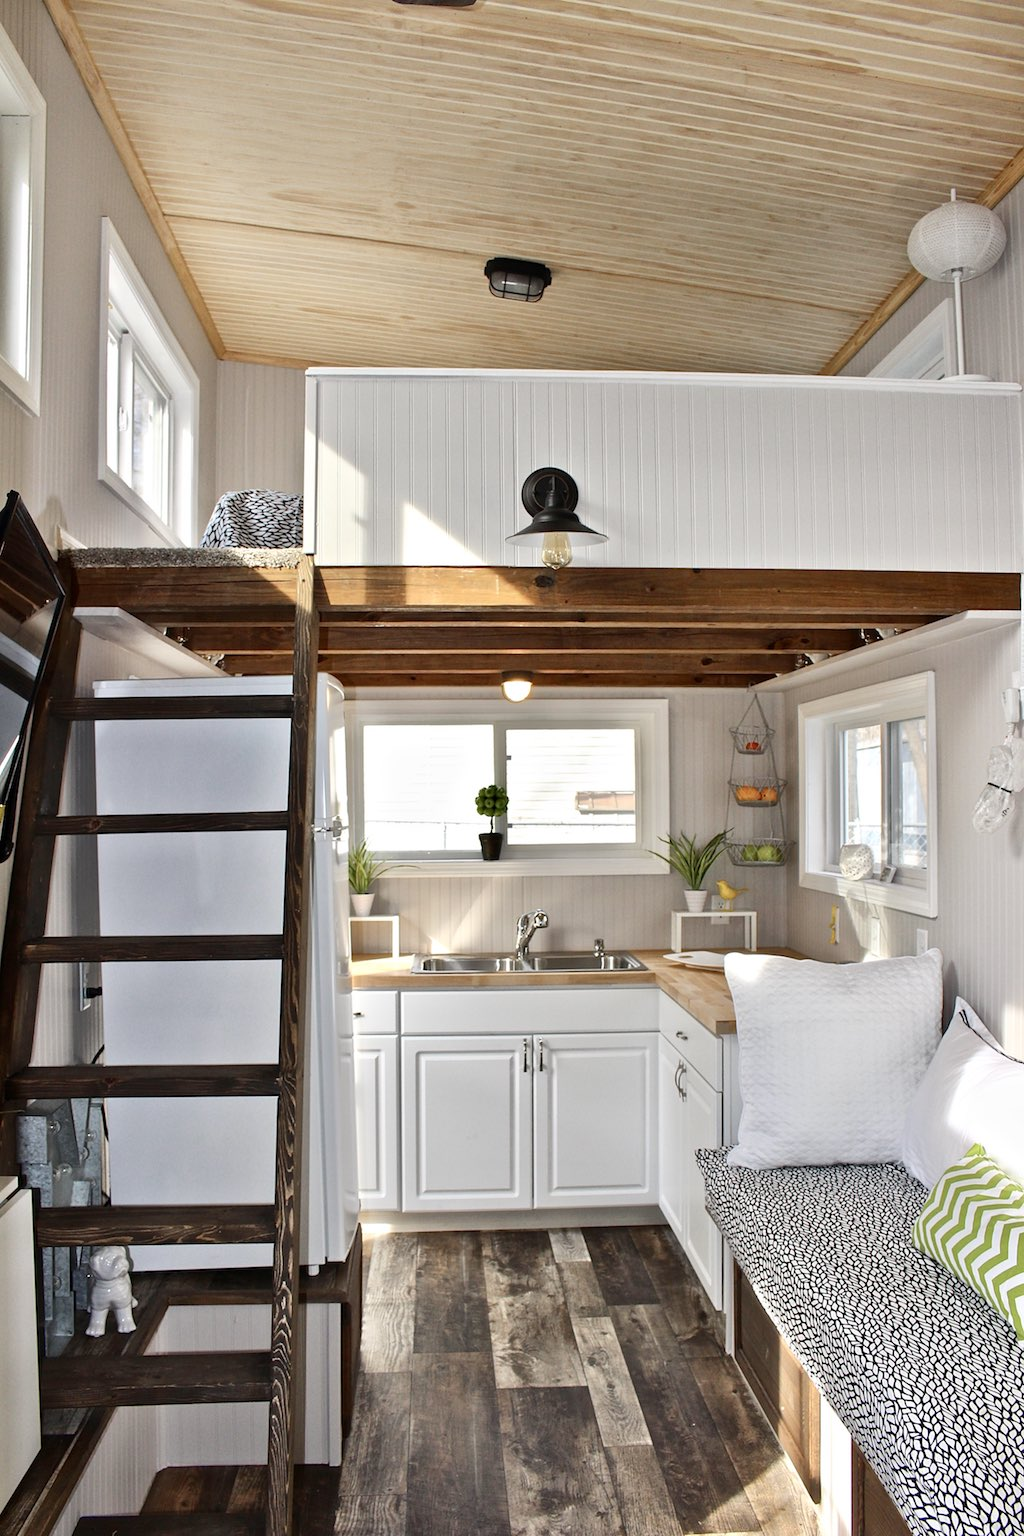 Swell Tiny Homes Curbed Largest Home Design Picture Inspirations Pitcheantrous